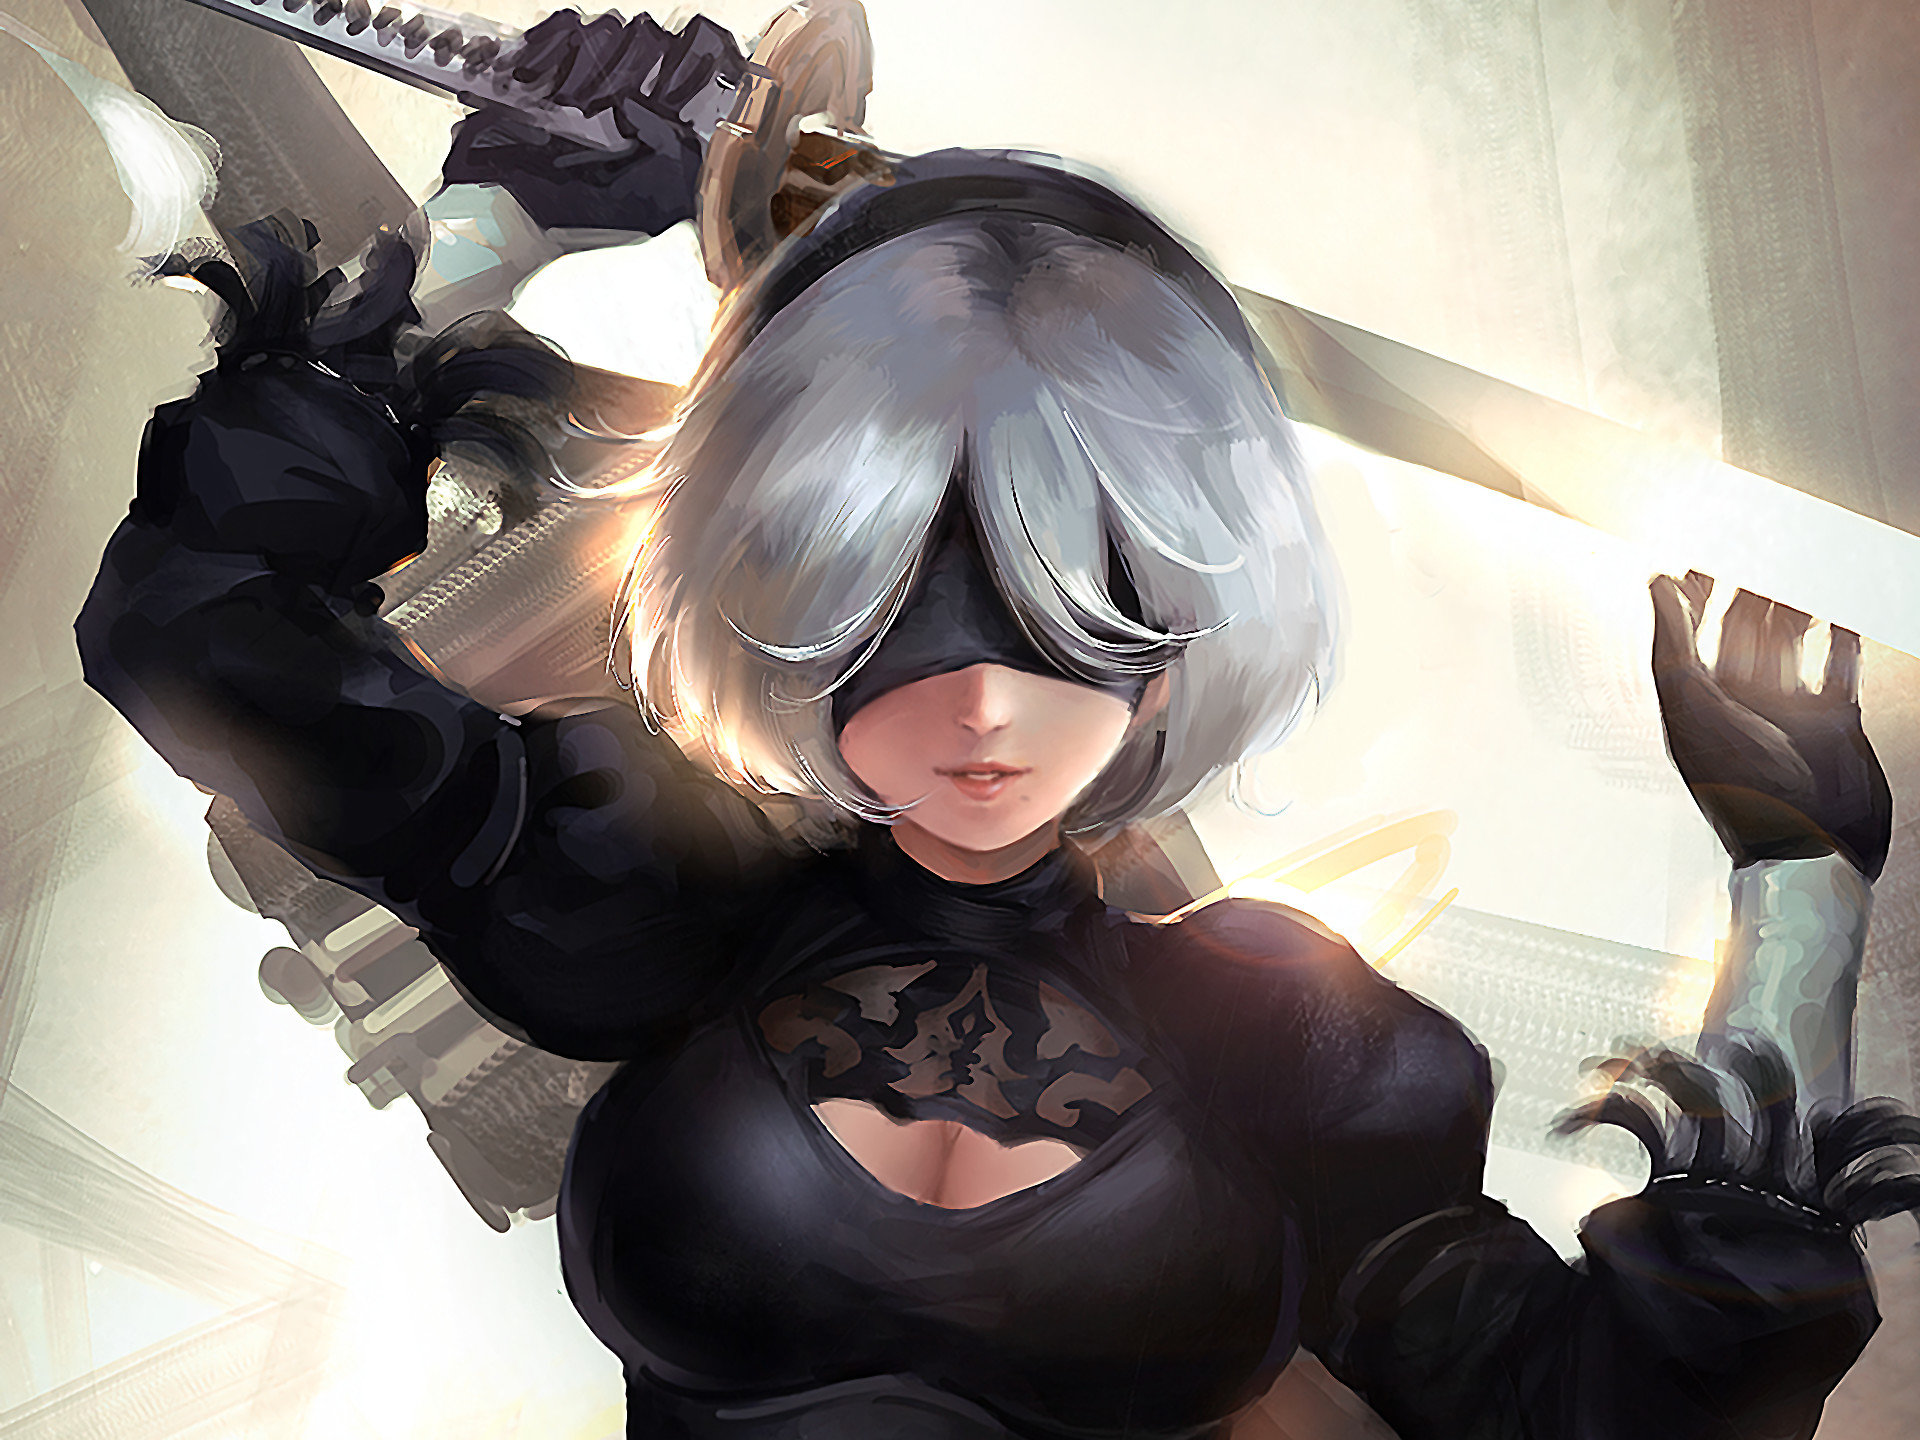 Nier Automata Cosplay Full Hd Wallpaper: NieR: Automata Wallpapers HD For Desktop Backgrounds